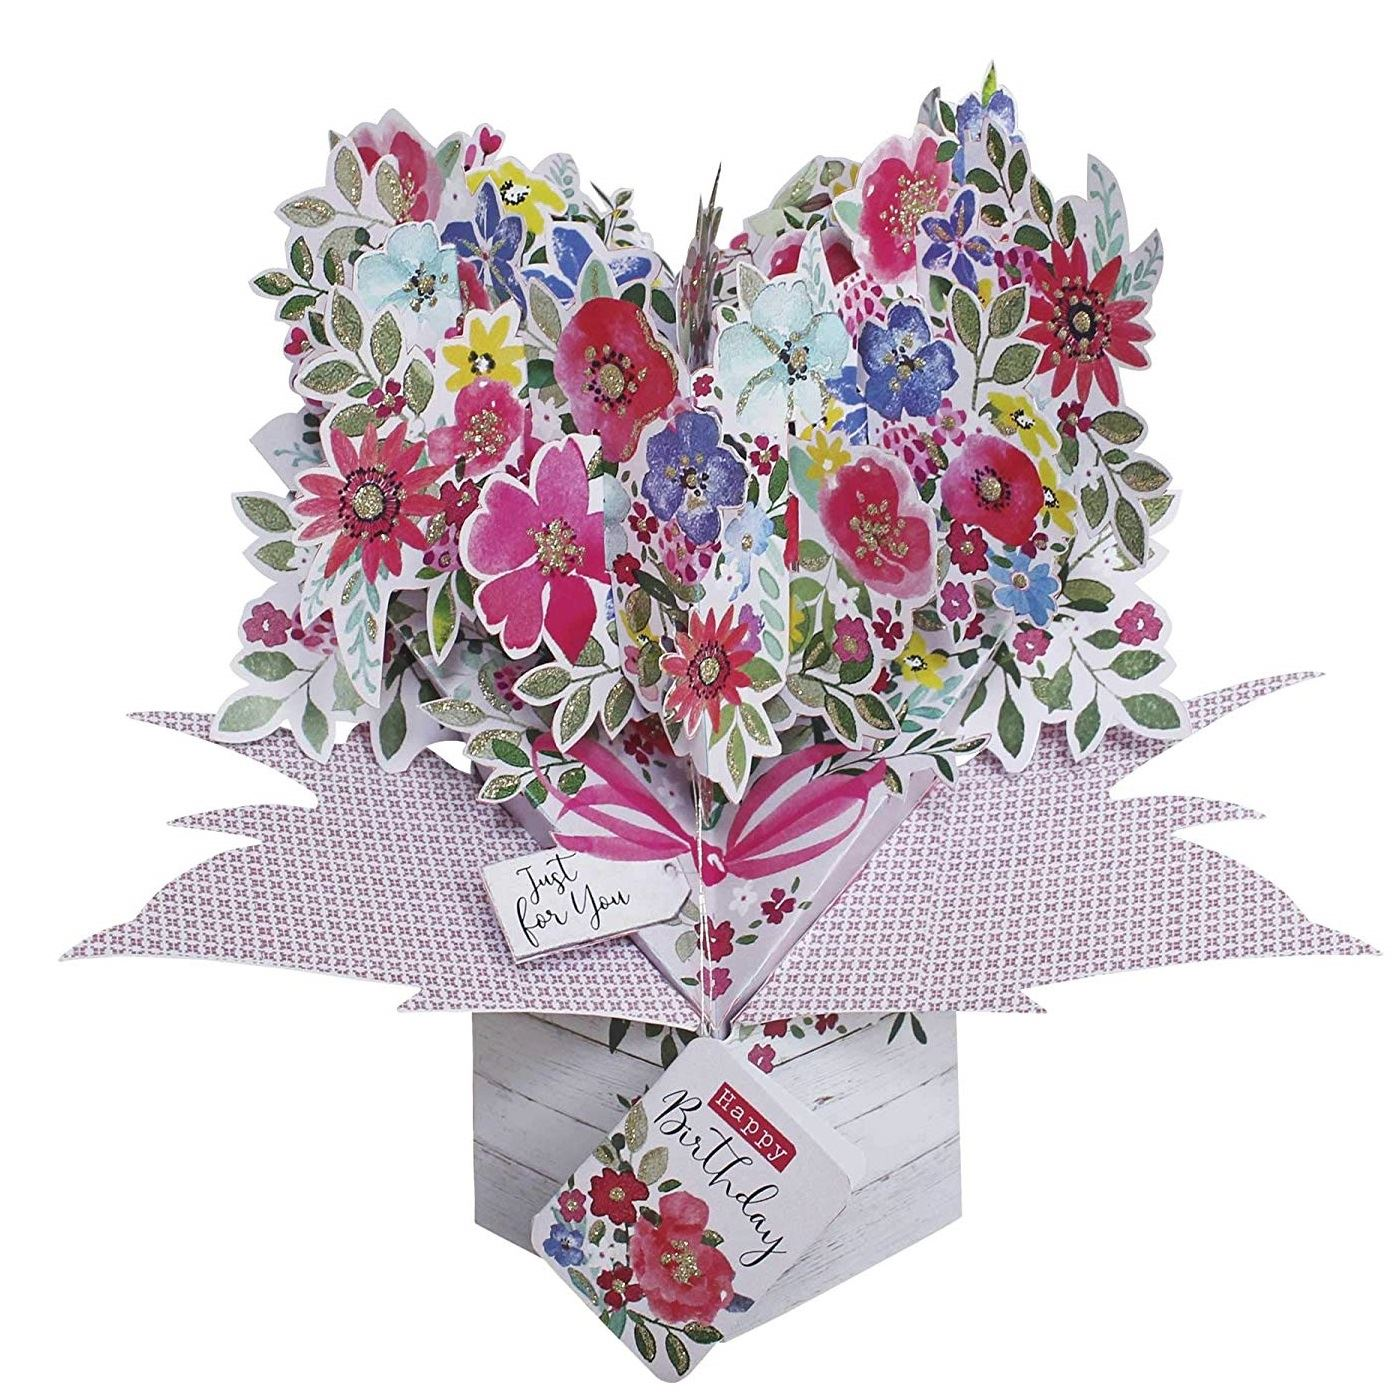 Details about 8D Pop Up Card Happy Birthday Flowers Bouquet Mum Blank  Greeting Cards For Her